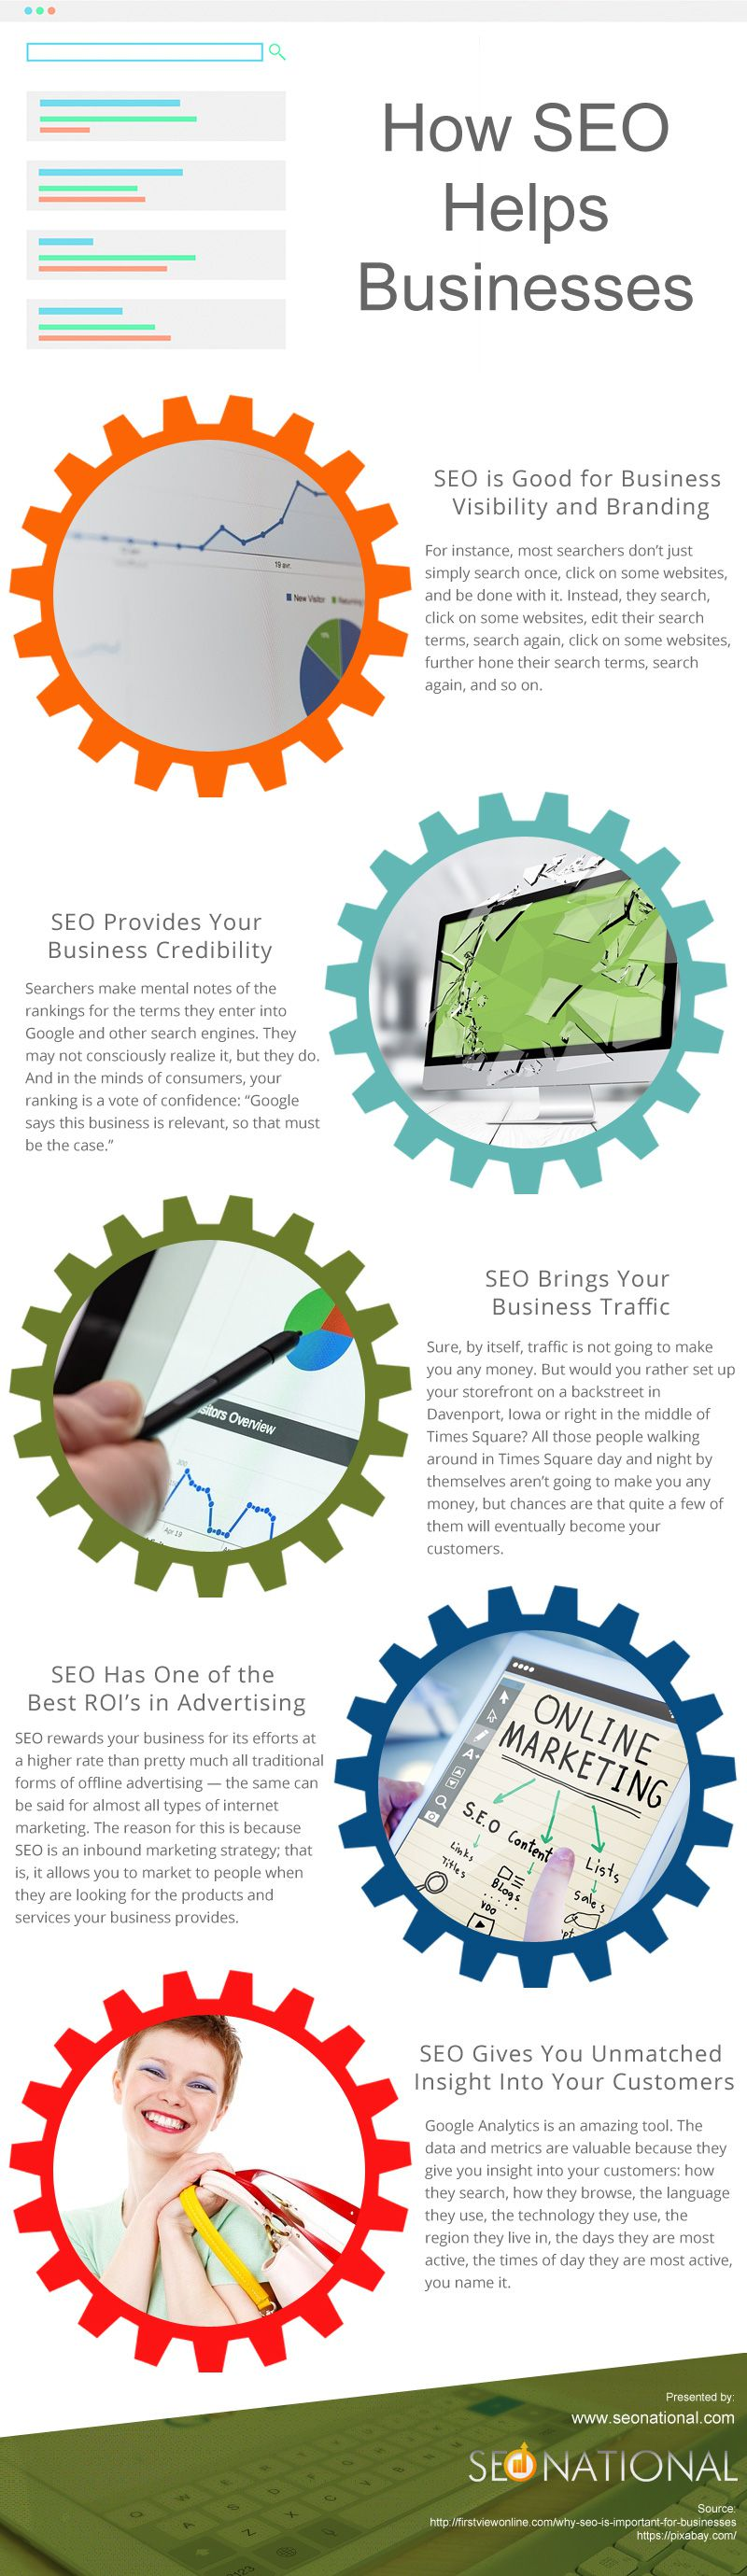 How SEO Helps Businesses [infographic]